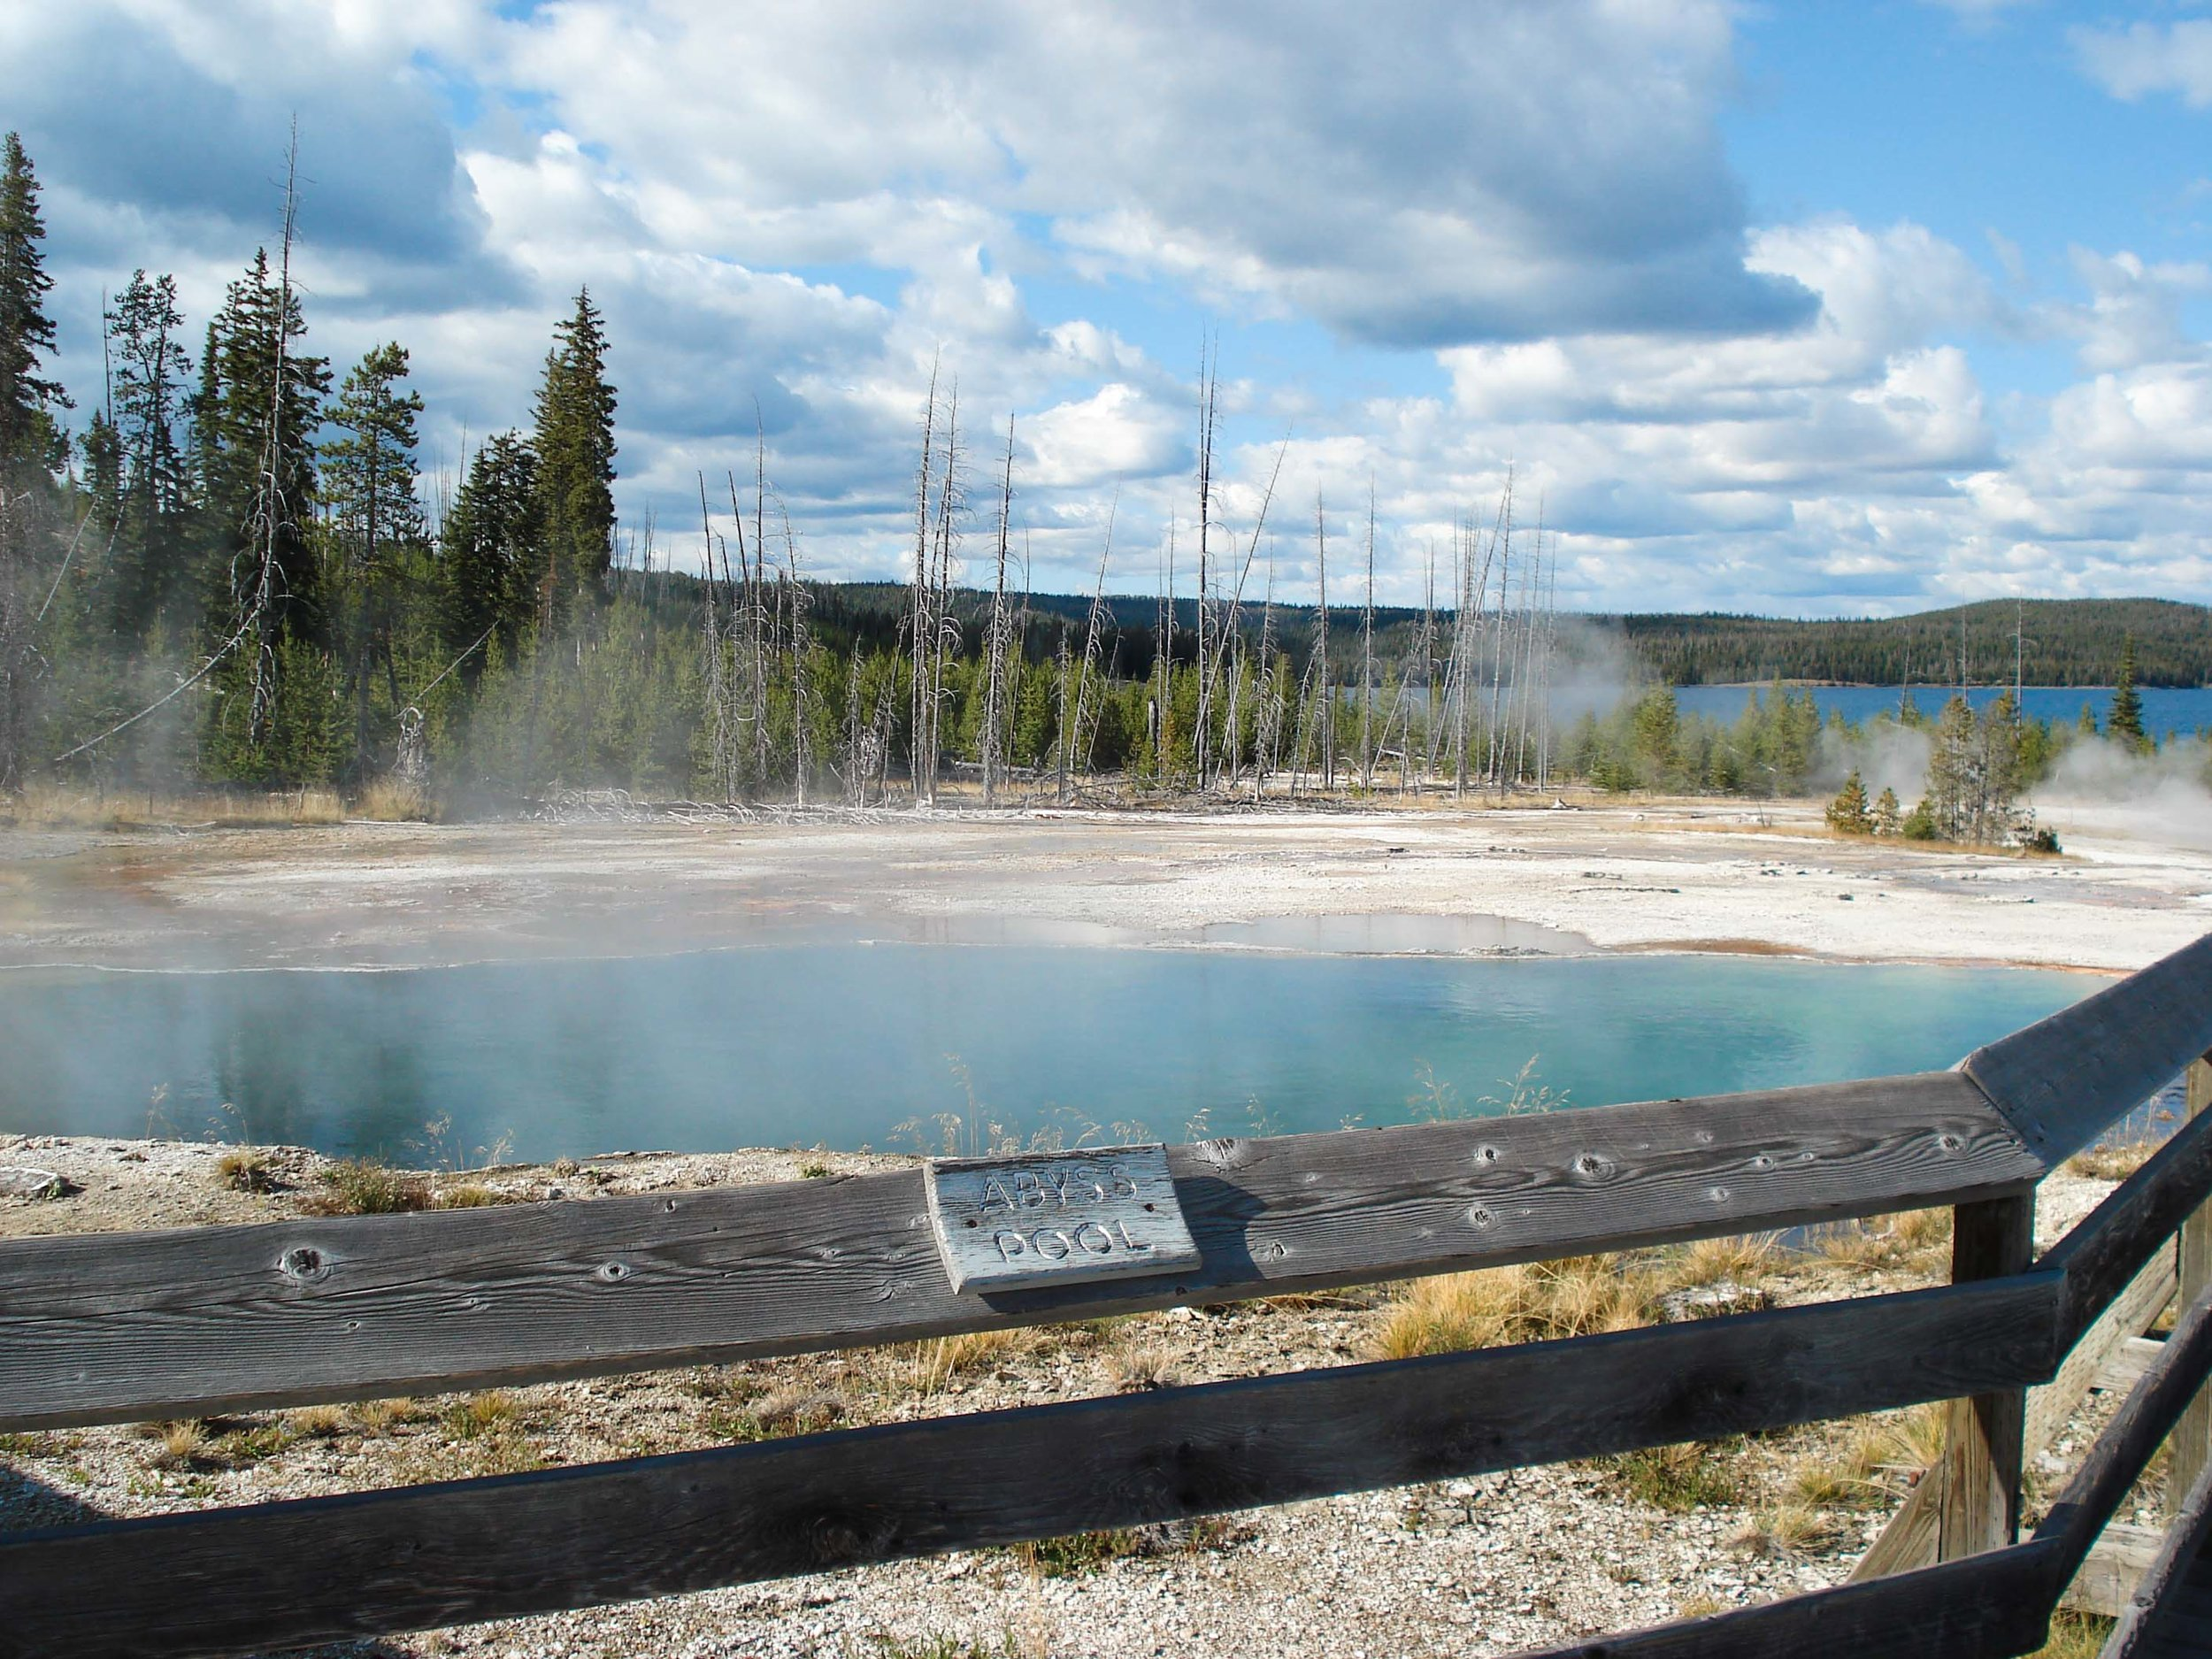 Yellowstone Lake | The Ultimate Travel Guide for Yellowstone National Park by Travel + Lifestyle blogger Bri Sul